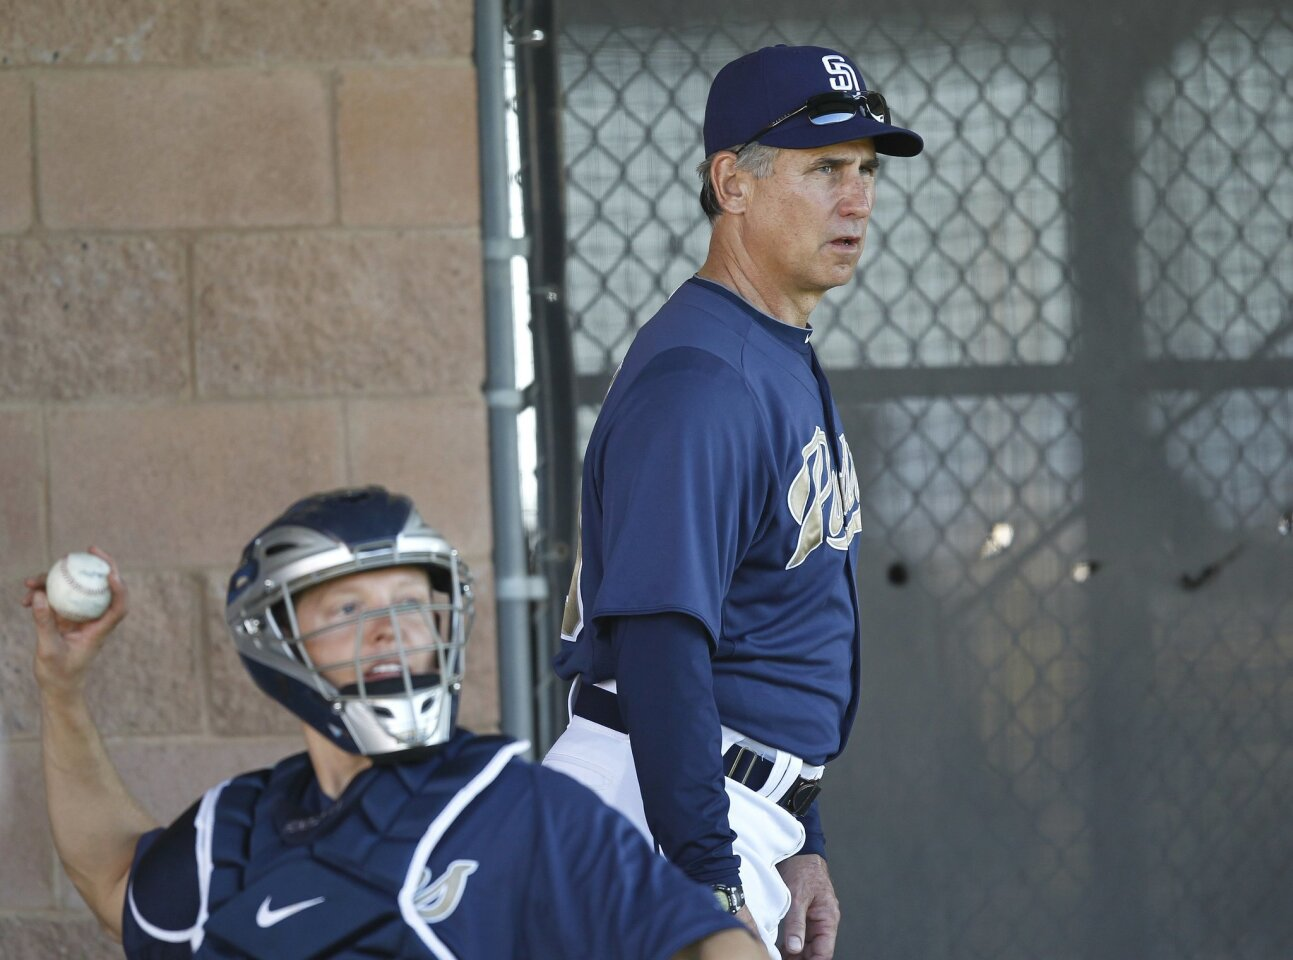 Padres manager Bub Black watches his pitchers during the San Diego Padres spring training.